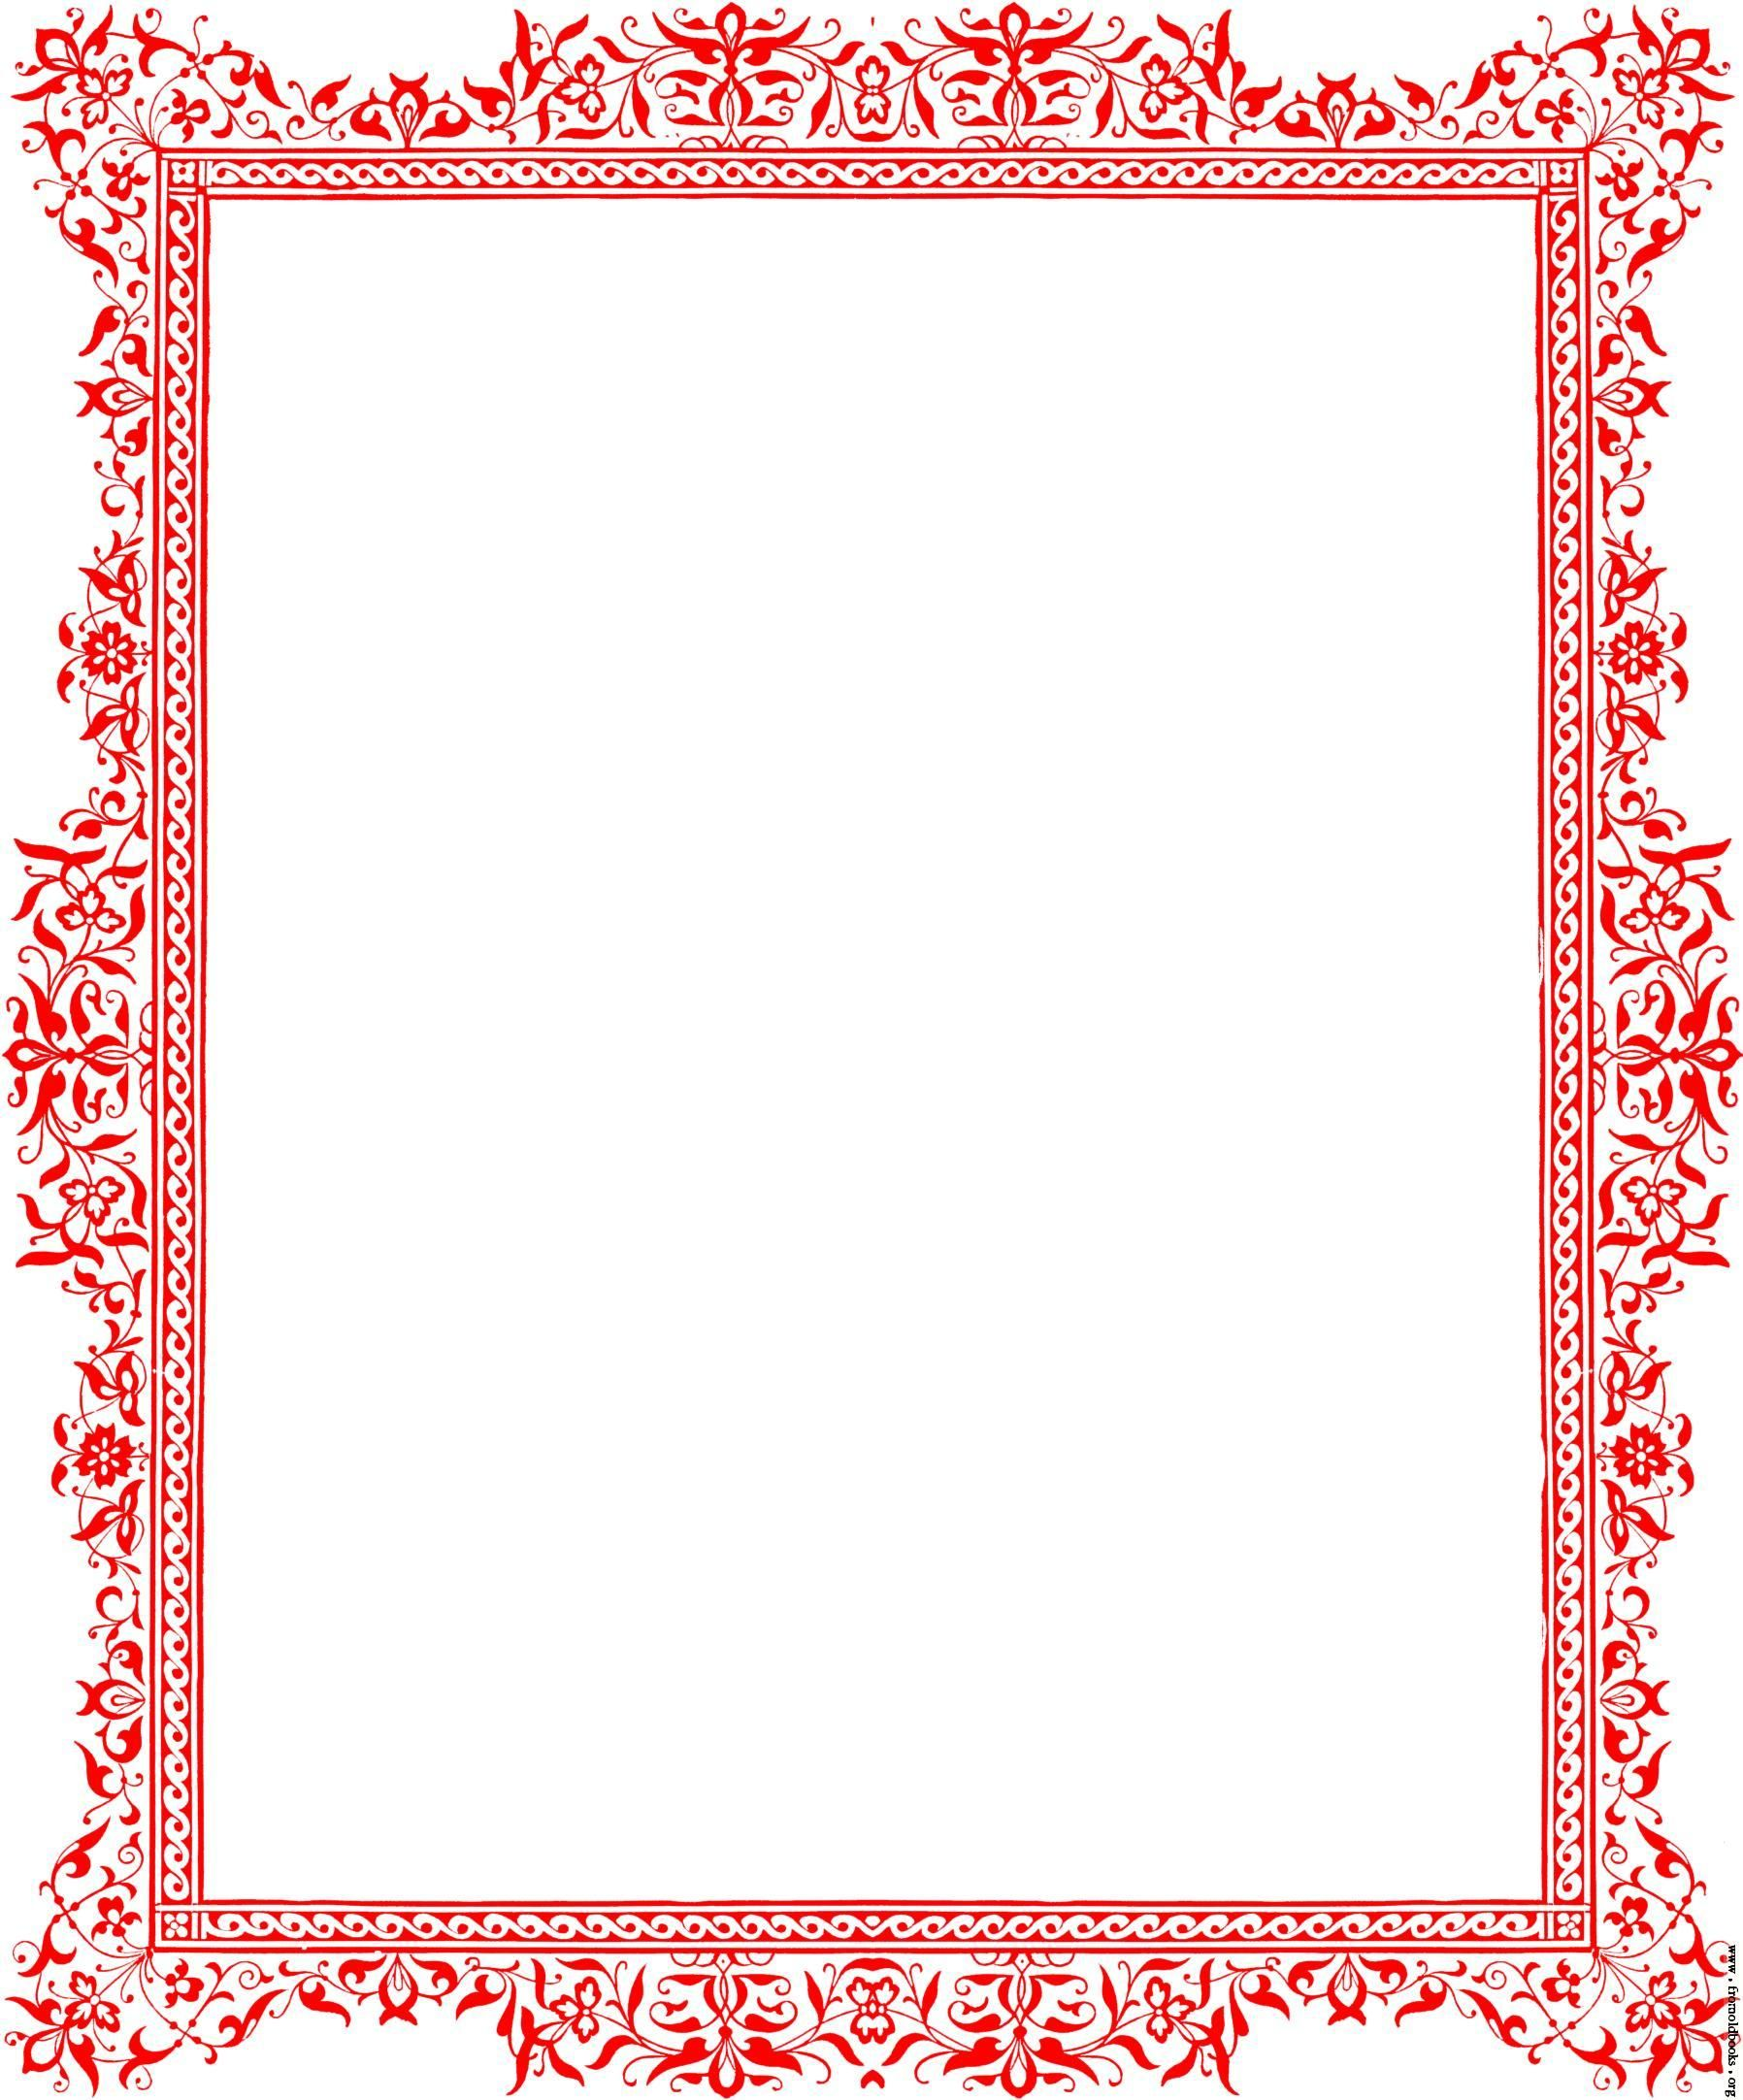 Red clipart border png decorative backgrounds for word documents | Red border from ... png